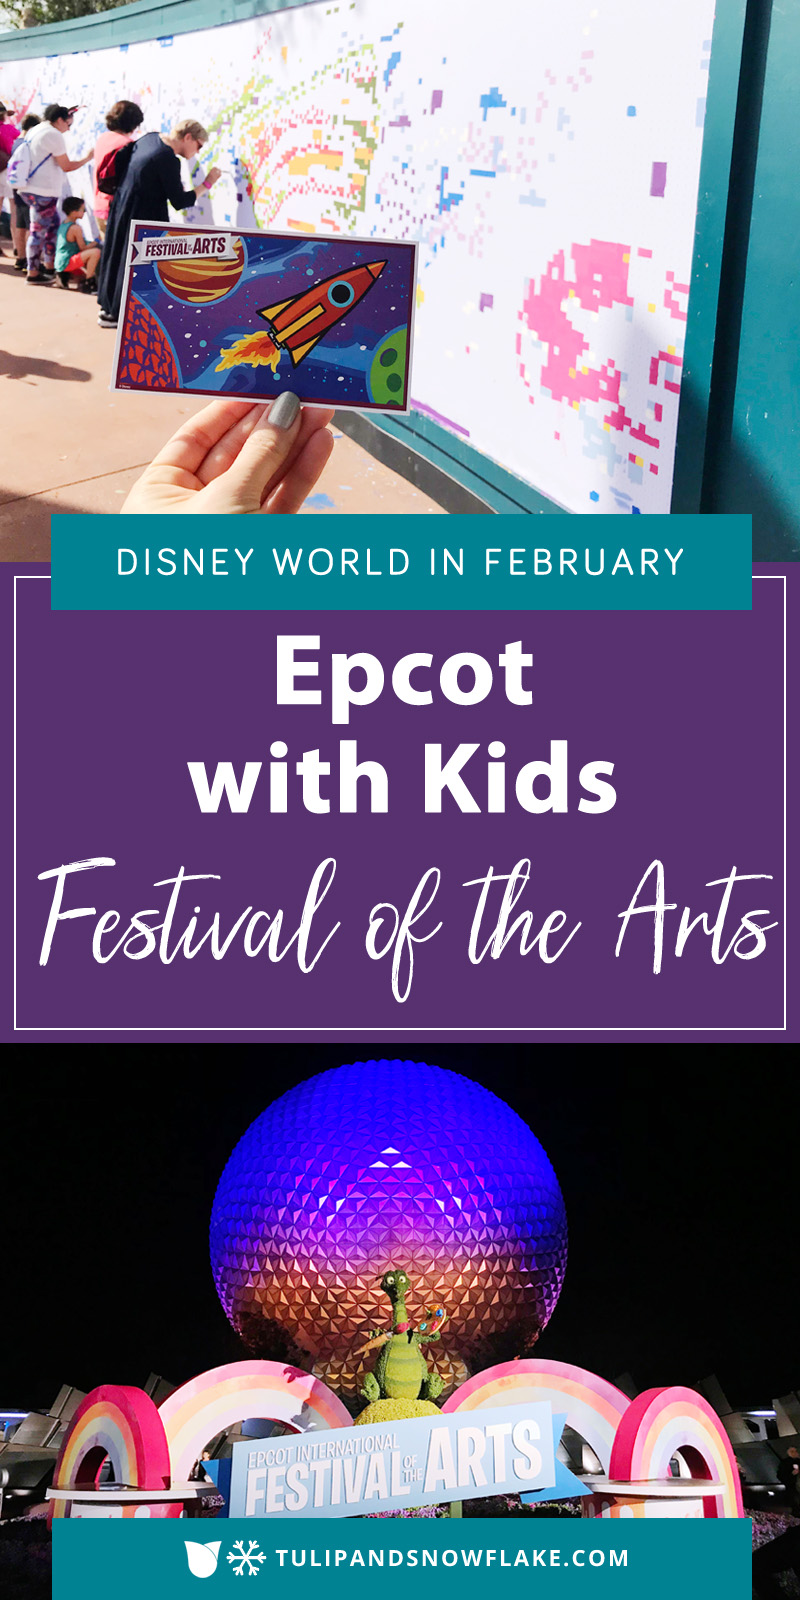 Epcot with Kids